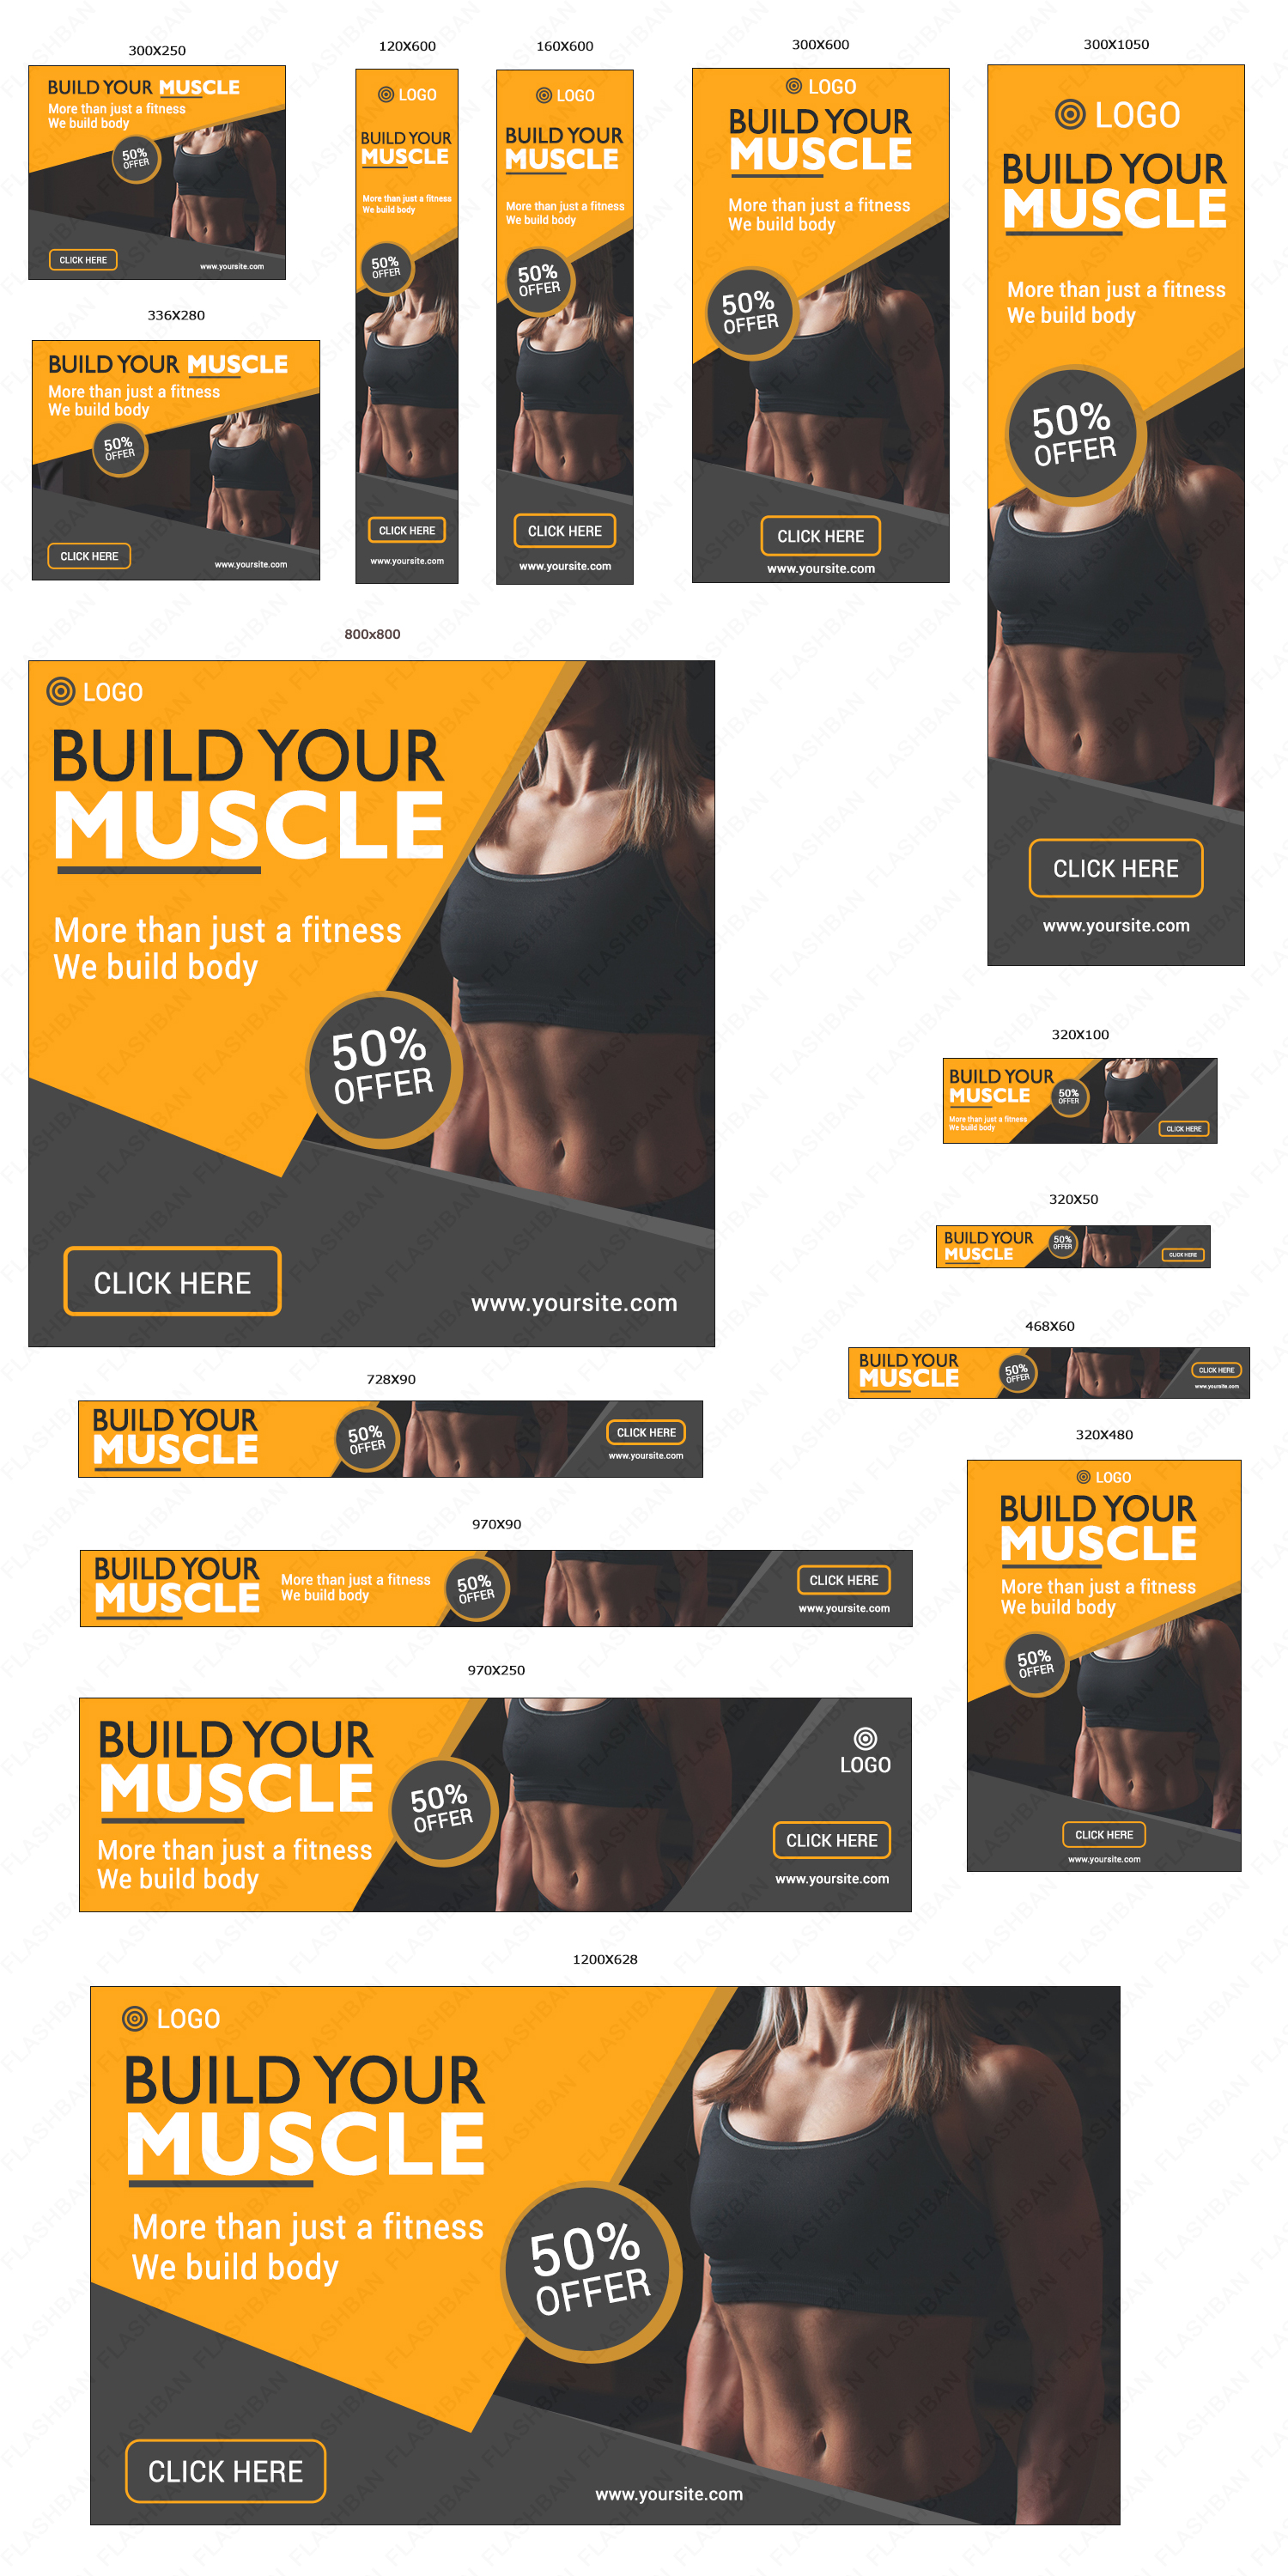 Gym Ad Banner ad in 15 different sizes